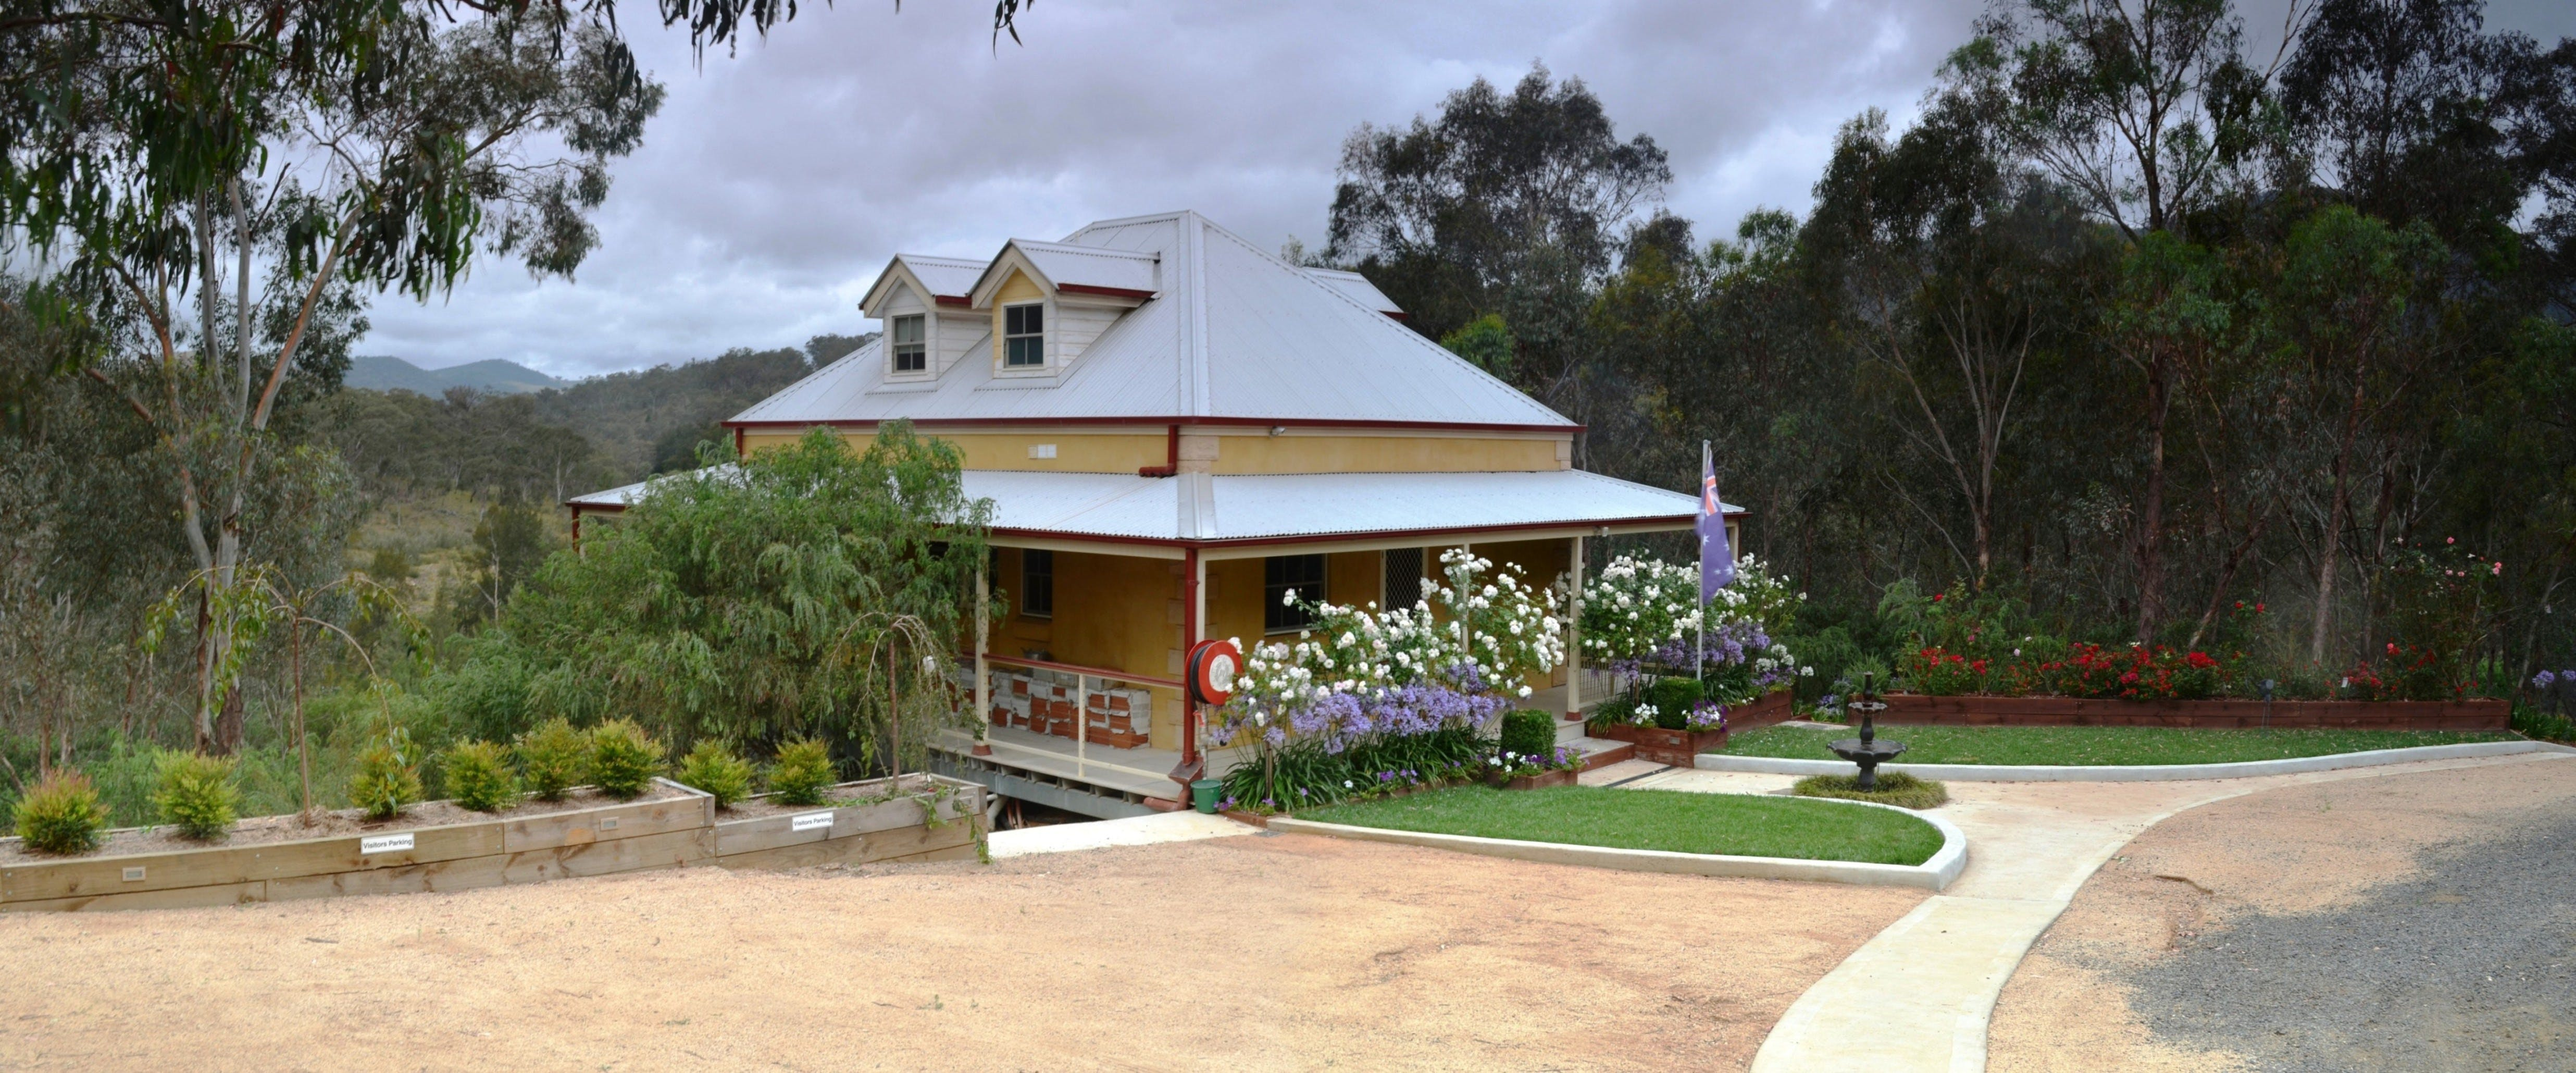 Tanwarra Lodge Bed and Breakfast - Tourism Cairns